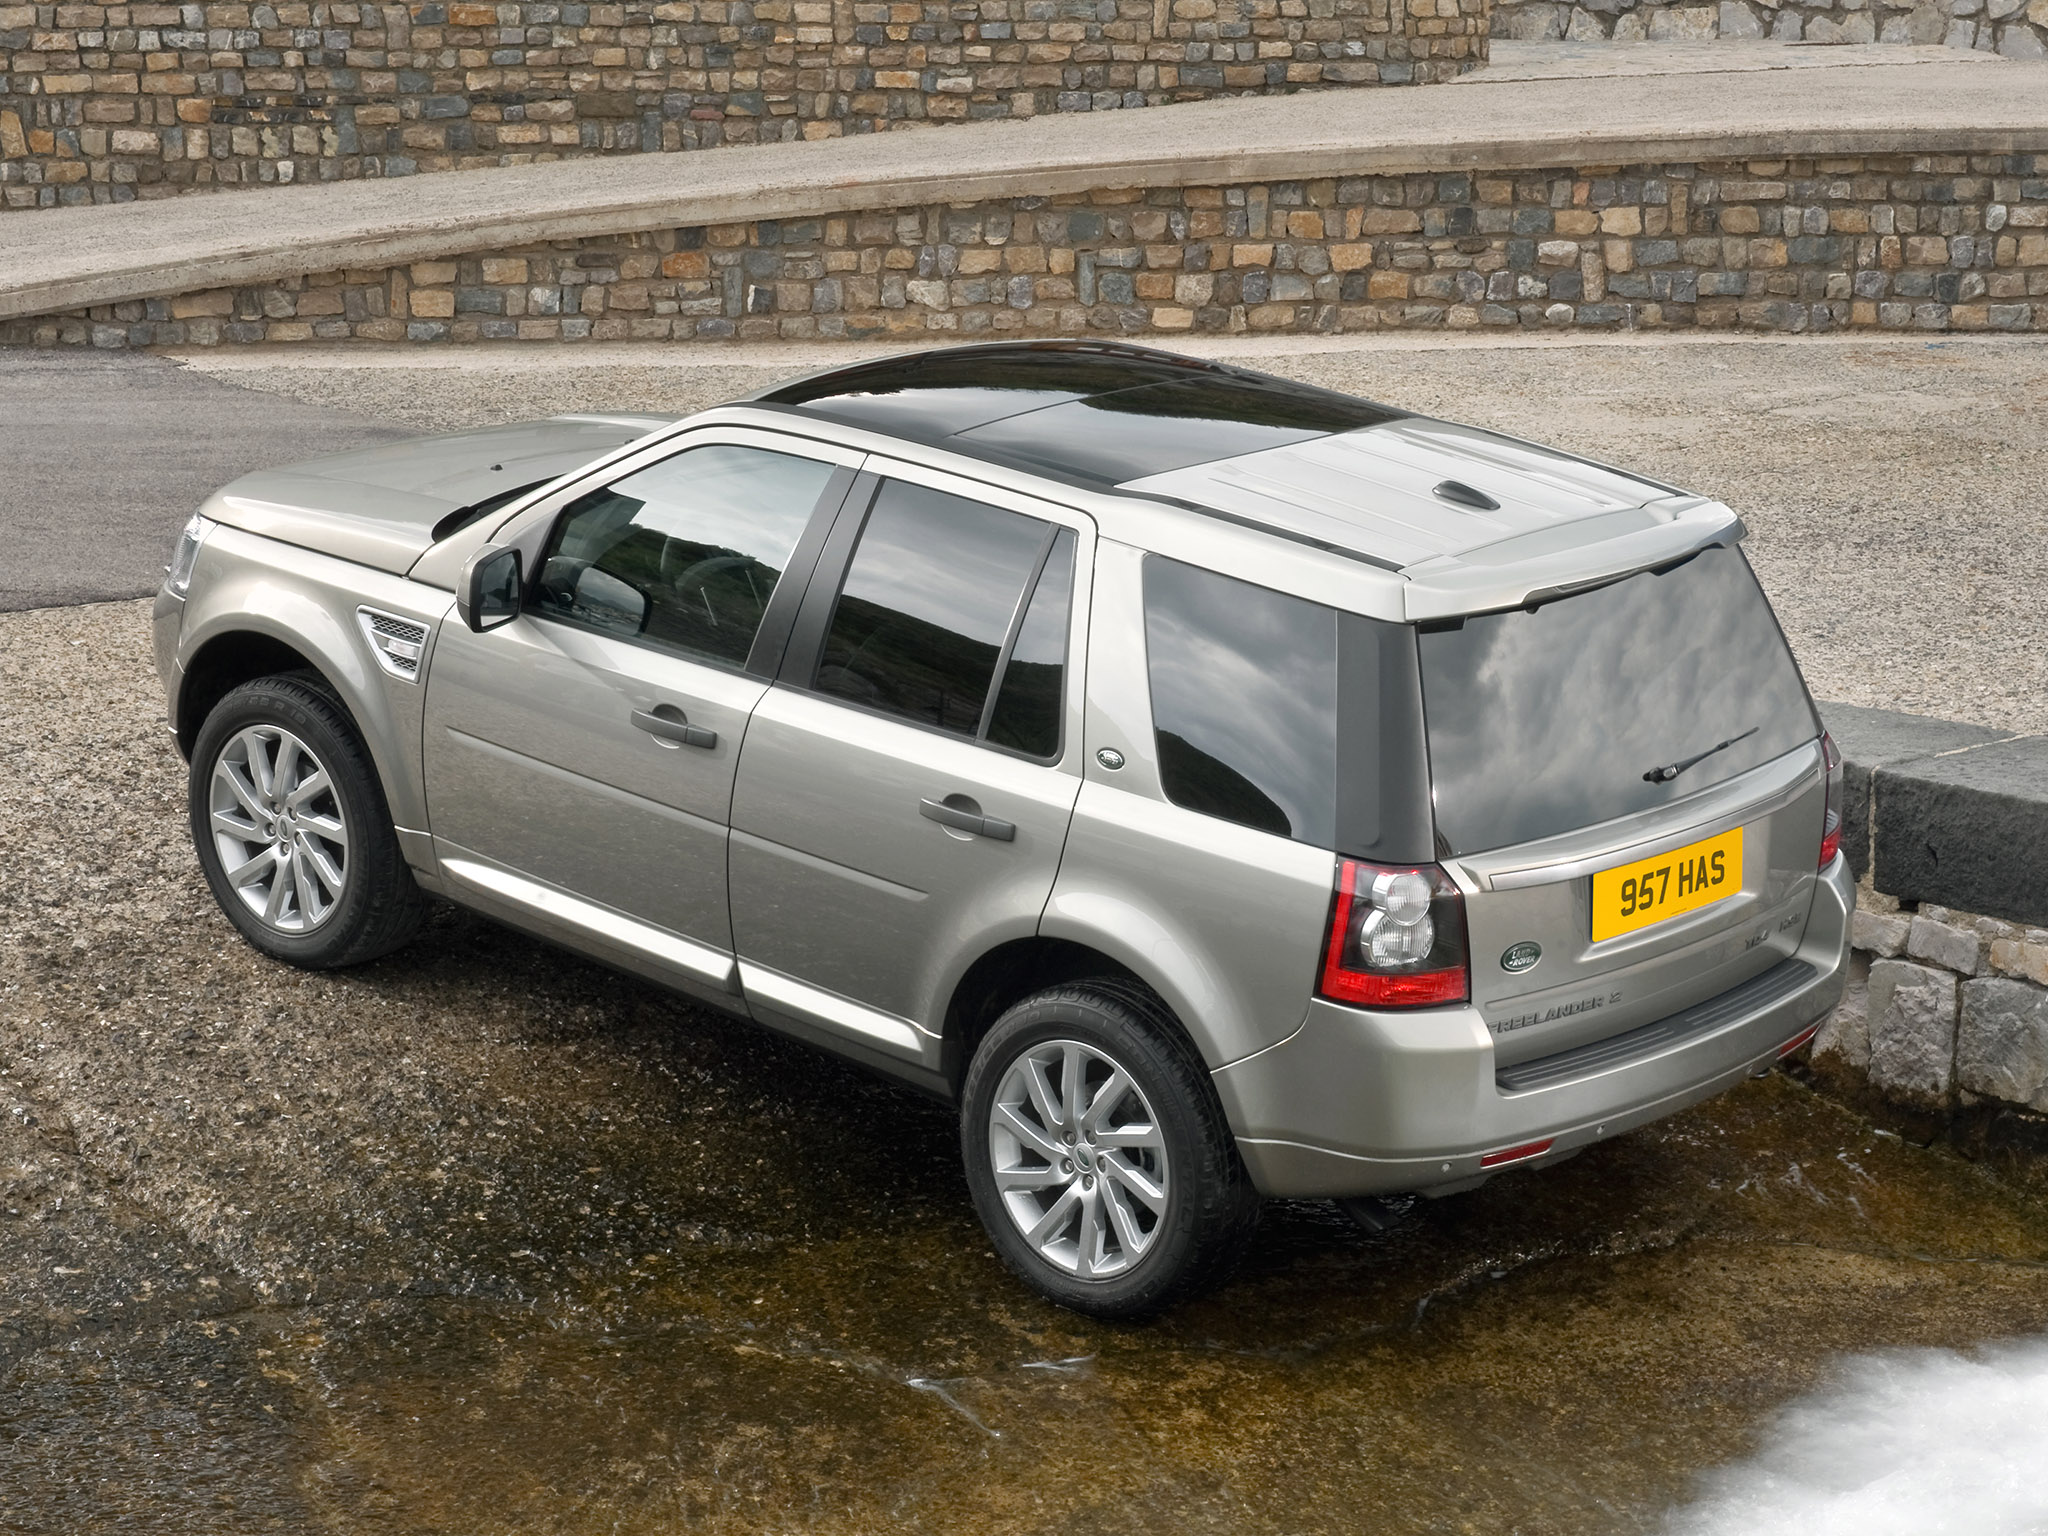 http://auto-database.com/image/pictures-of-land-rover-freelander-ii-2010-172227.jpg